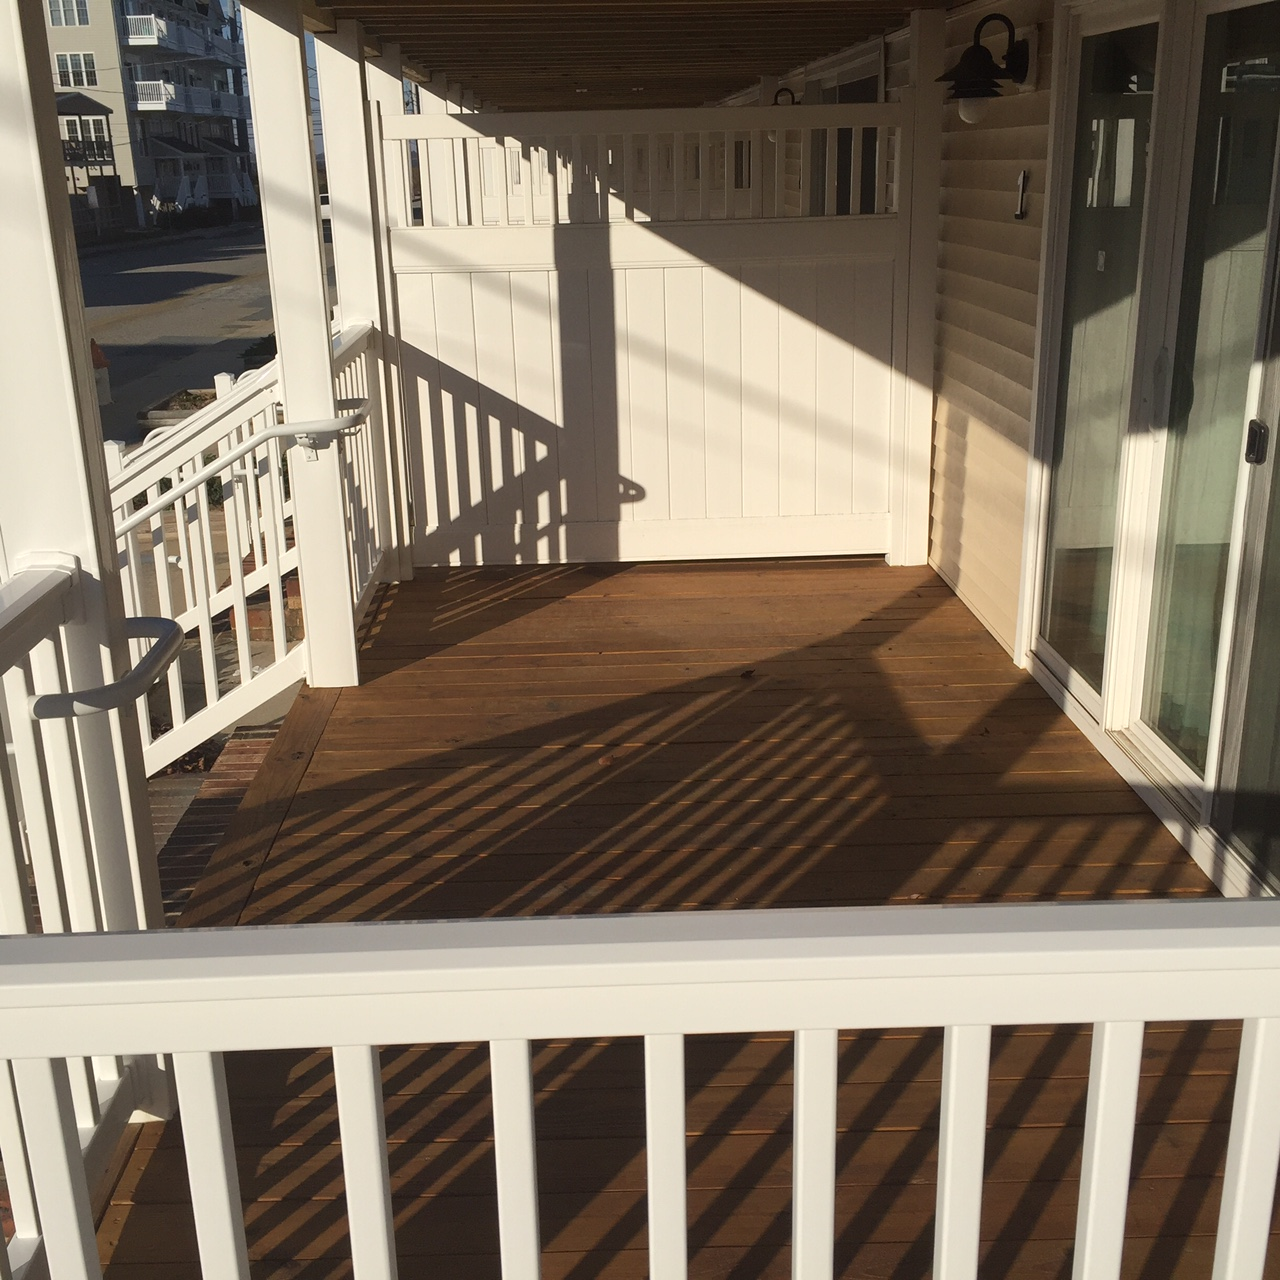 Commercial Residential Carpentry Framing Decks Siding Roofing